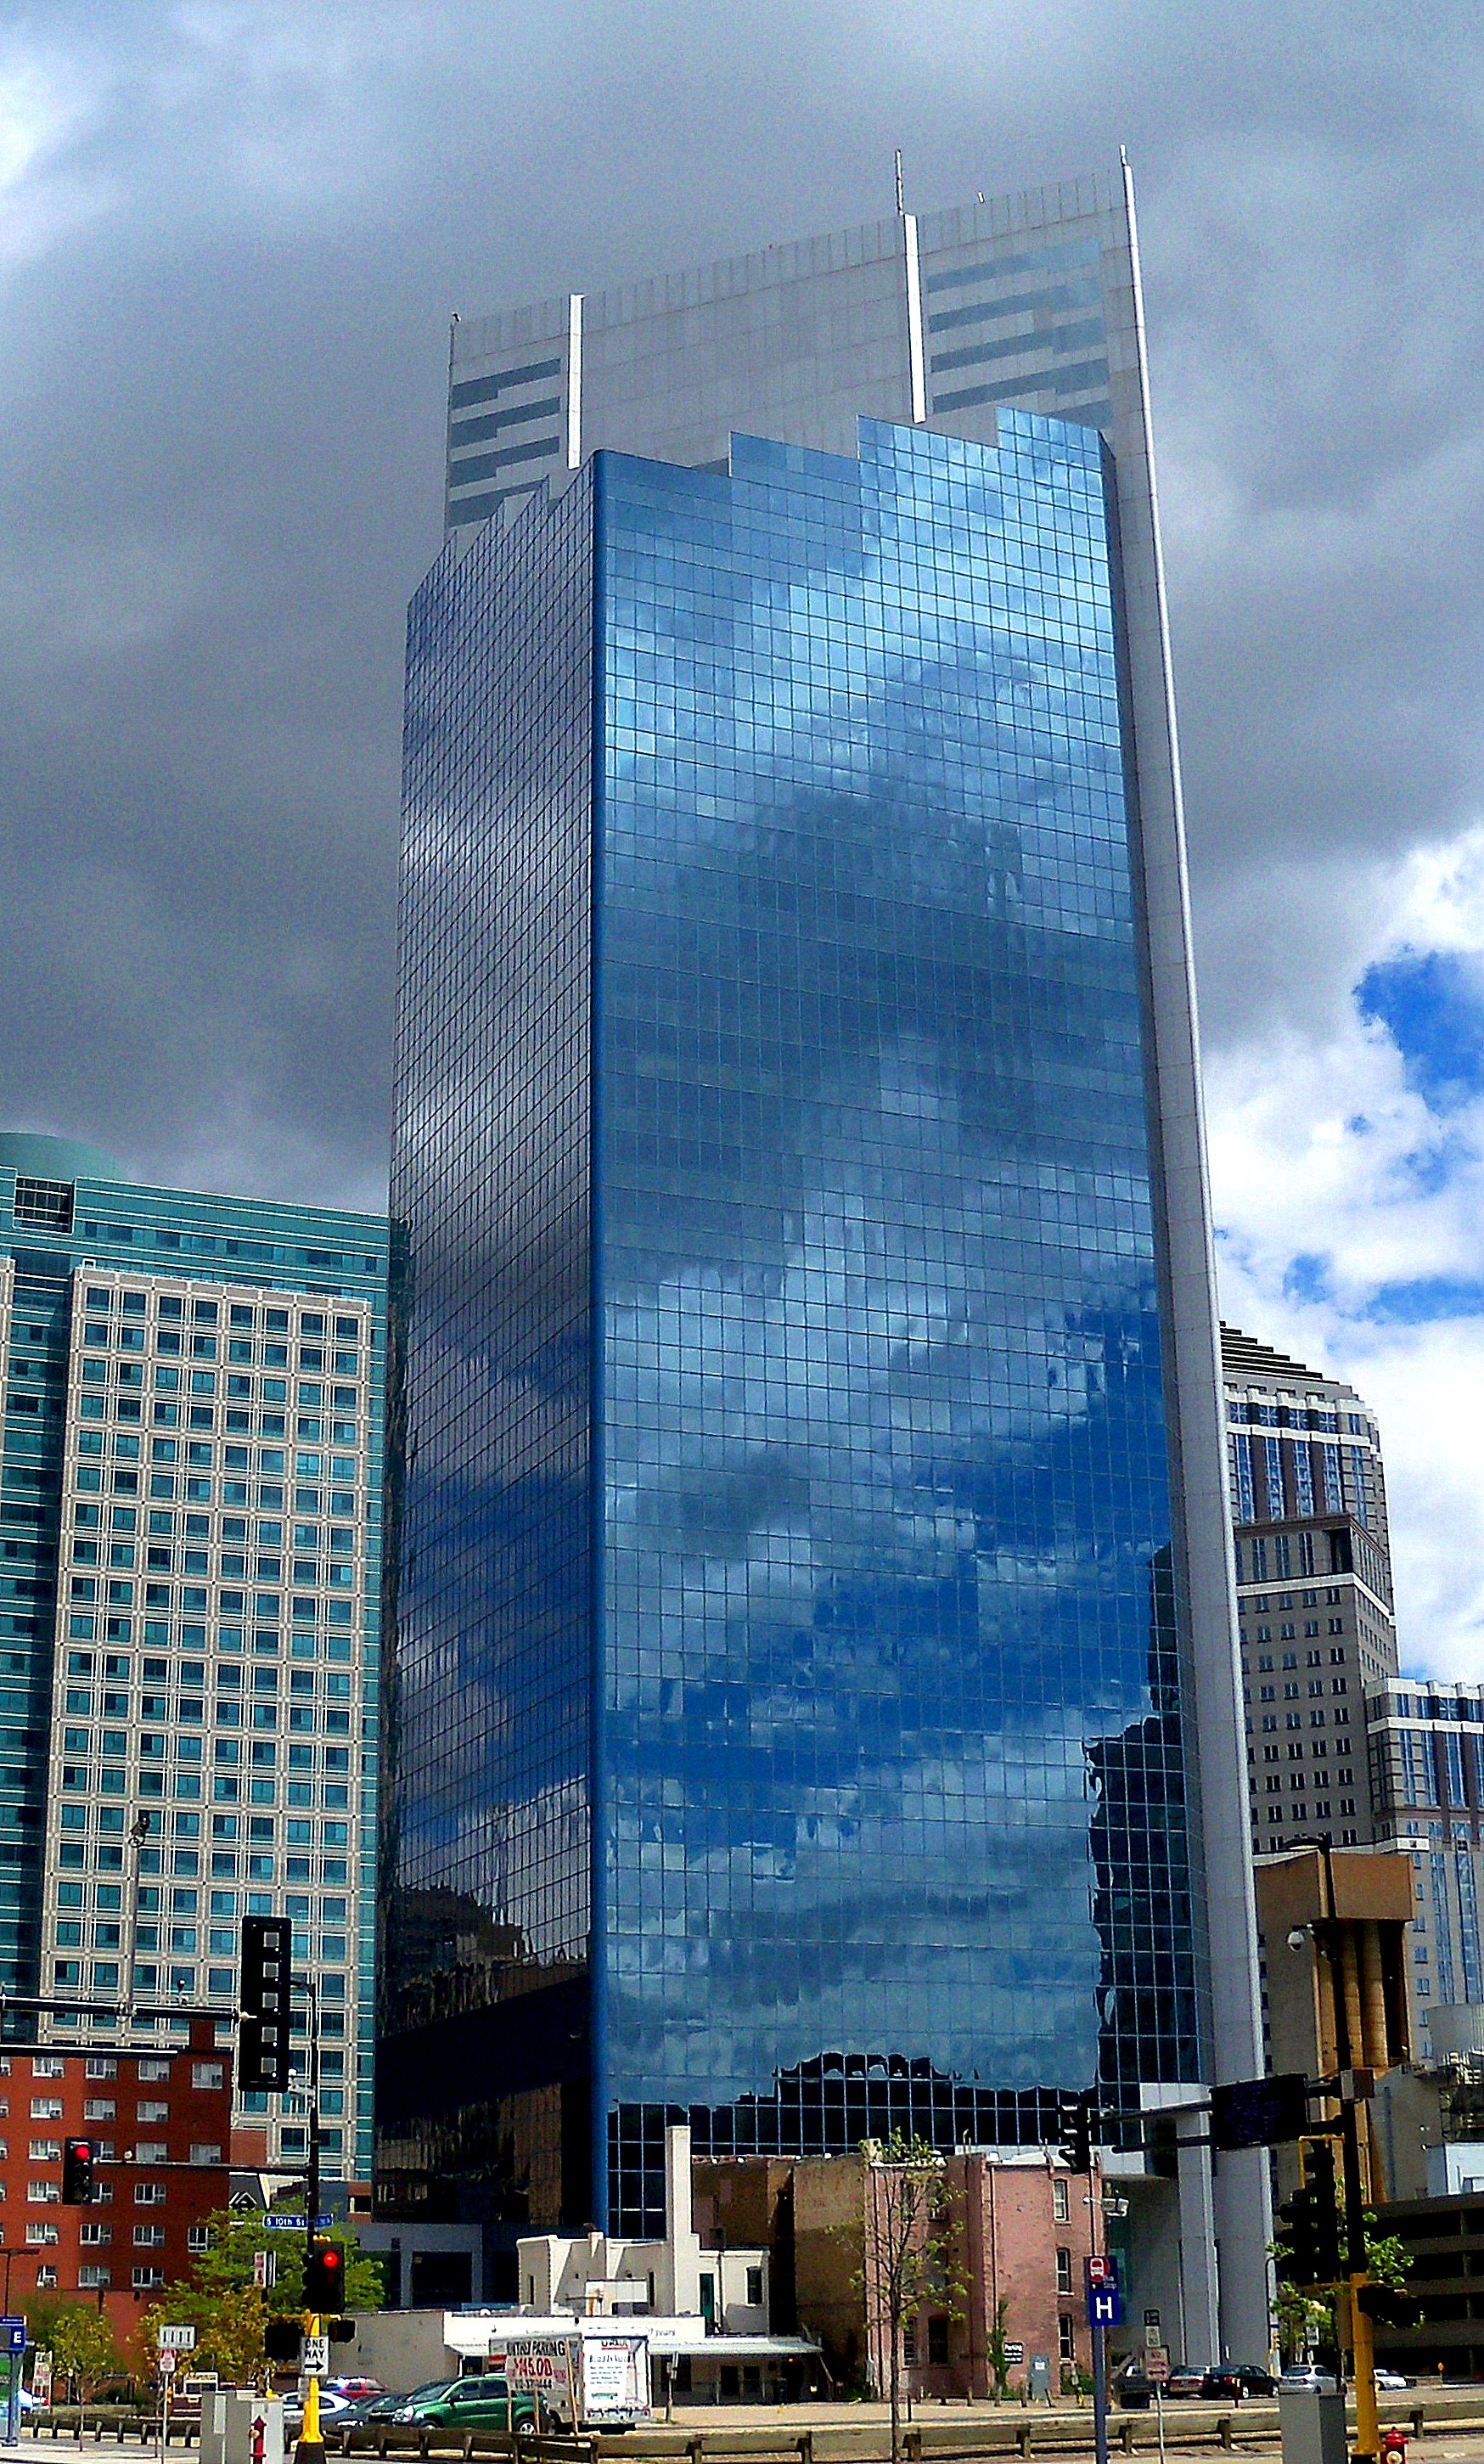 Campbell Mithun Tower (former Piper Jaffray) courtesy of Creative Commons on Wikipedia